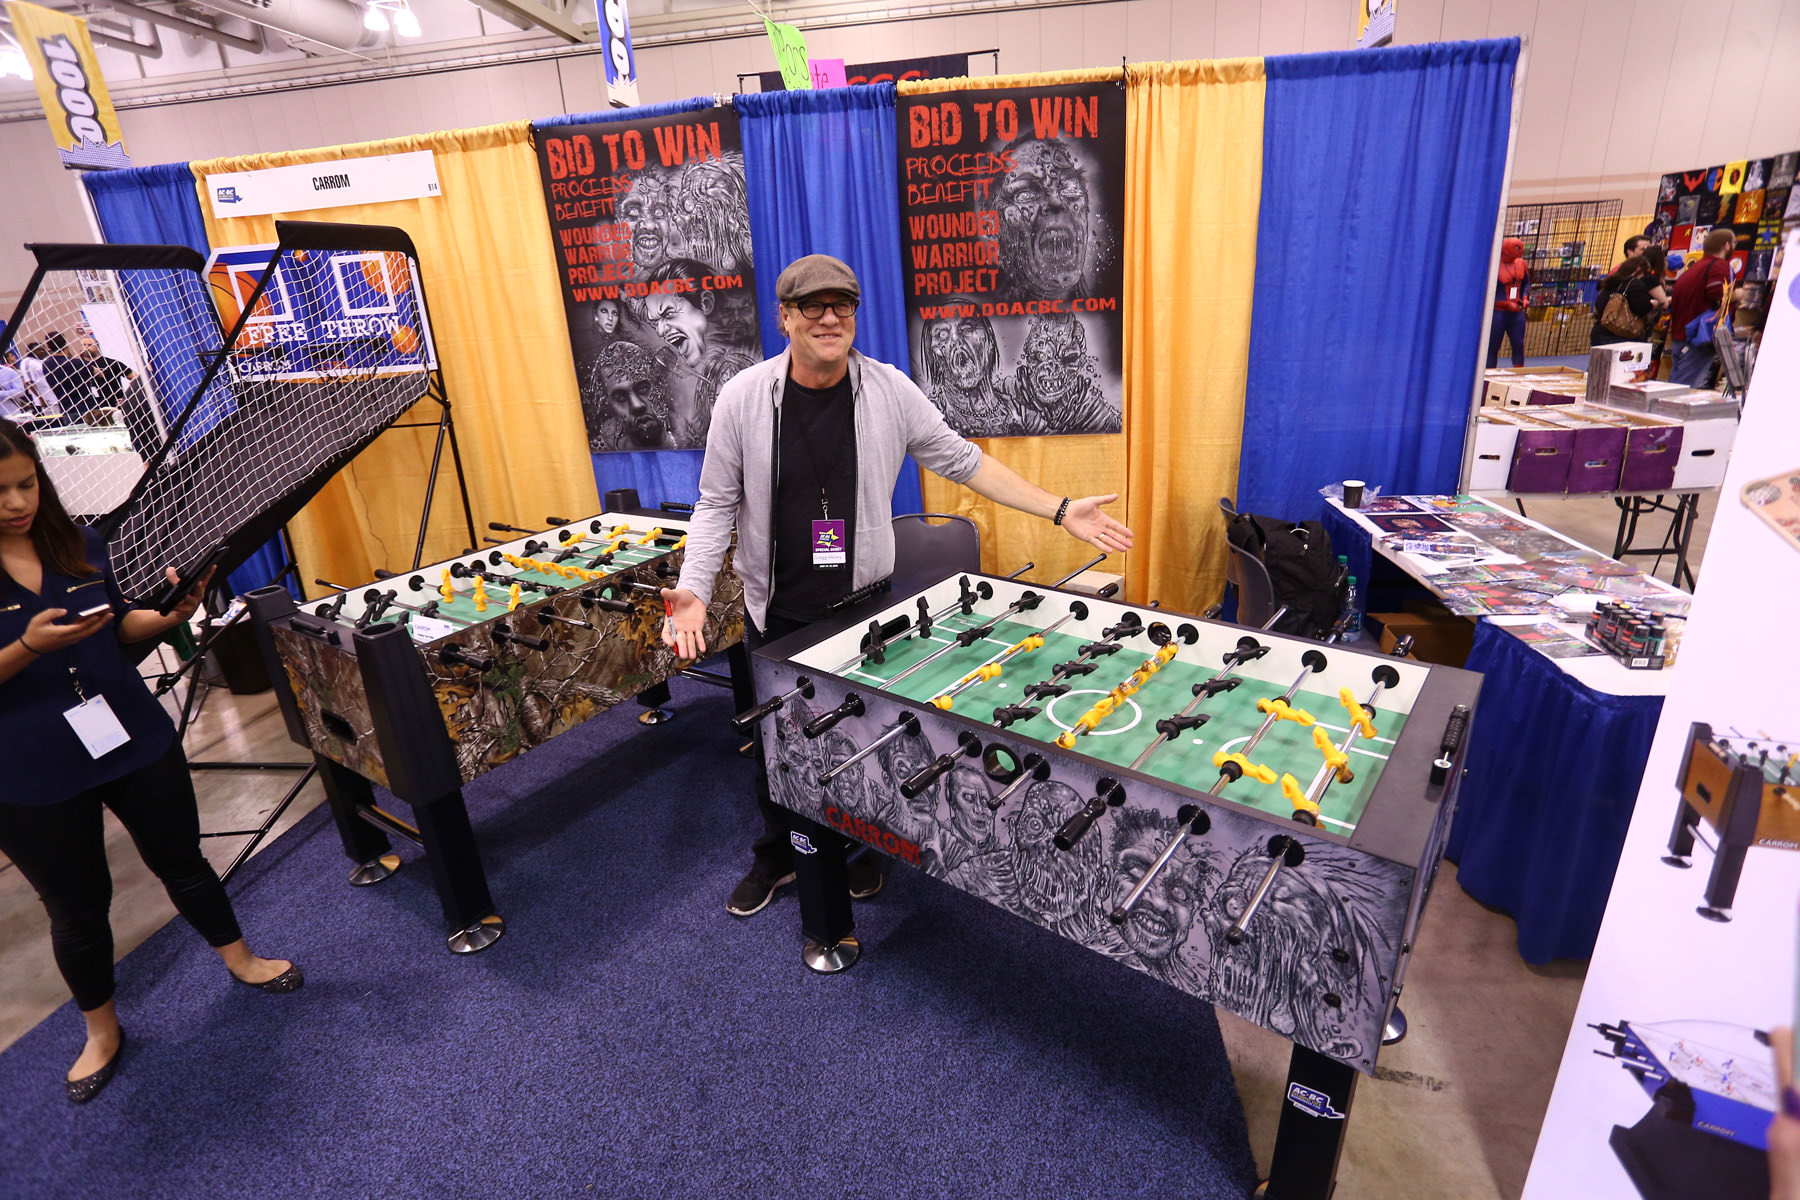 Actor Gregg Henry From U201cGuardians Of The Galaxyu201d Poses By The Zombie Foosball  Table. U201c